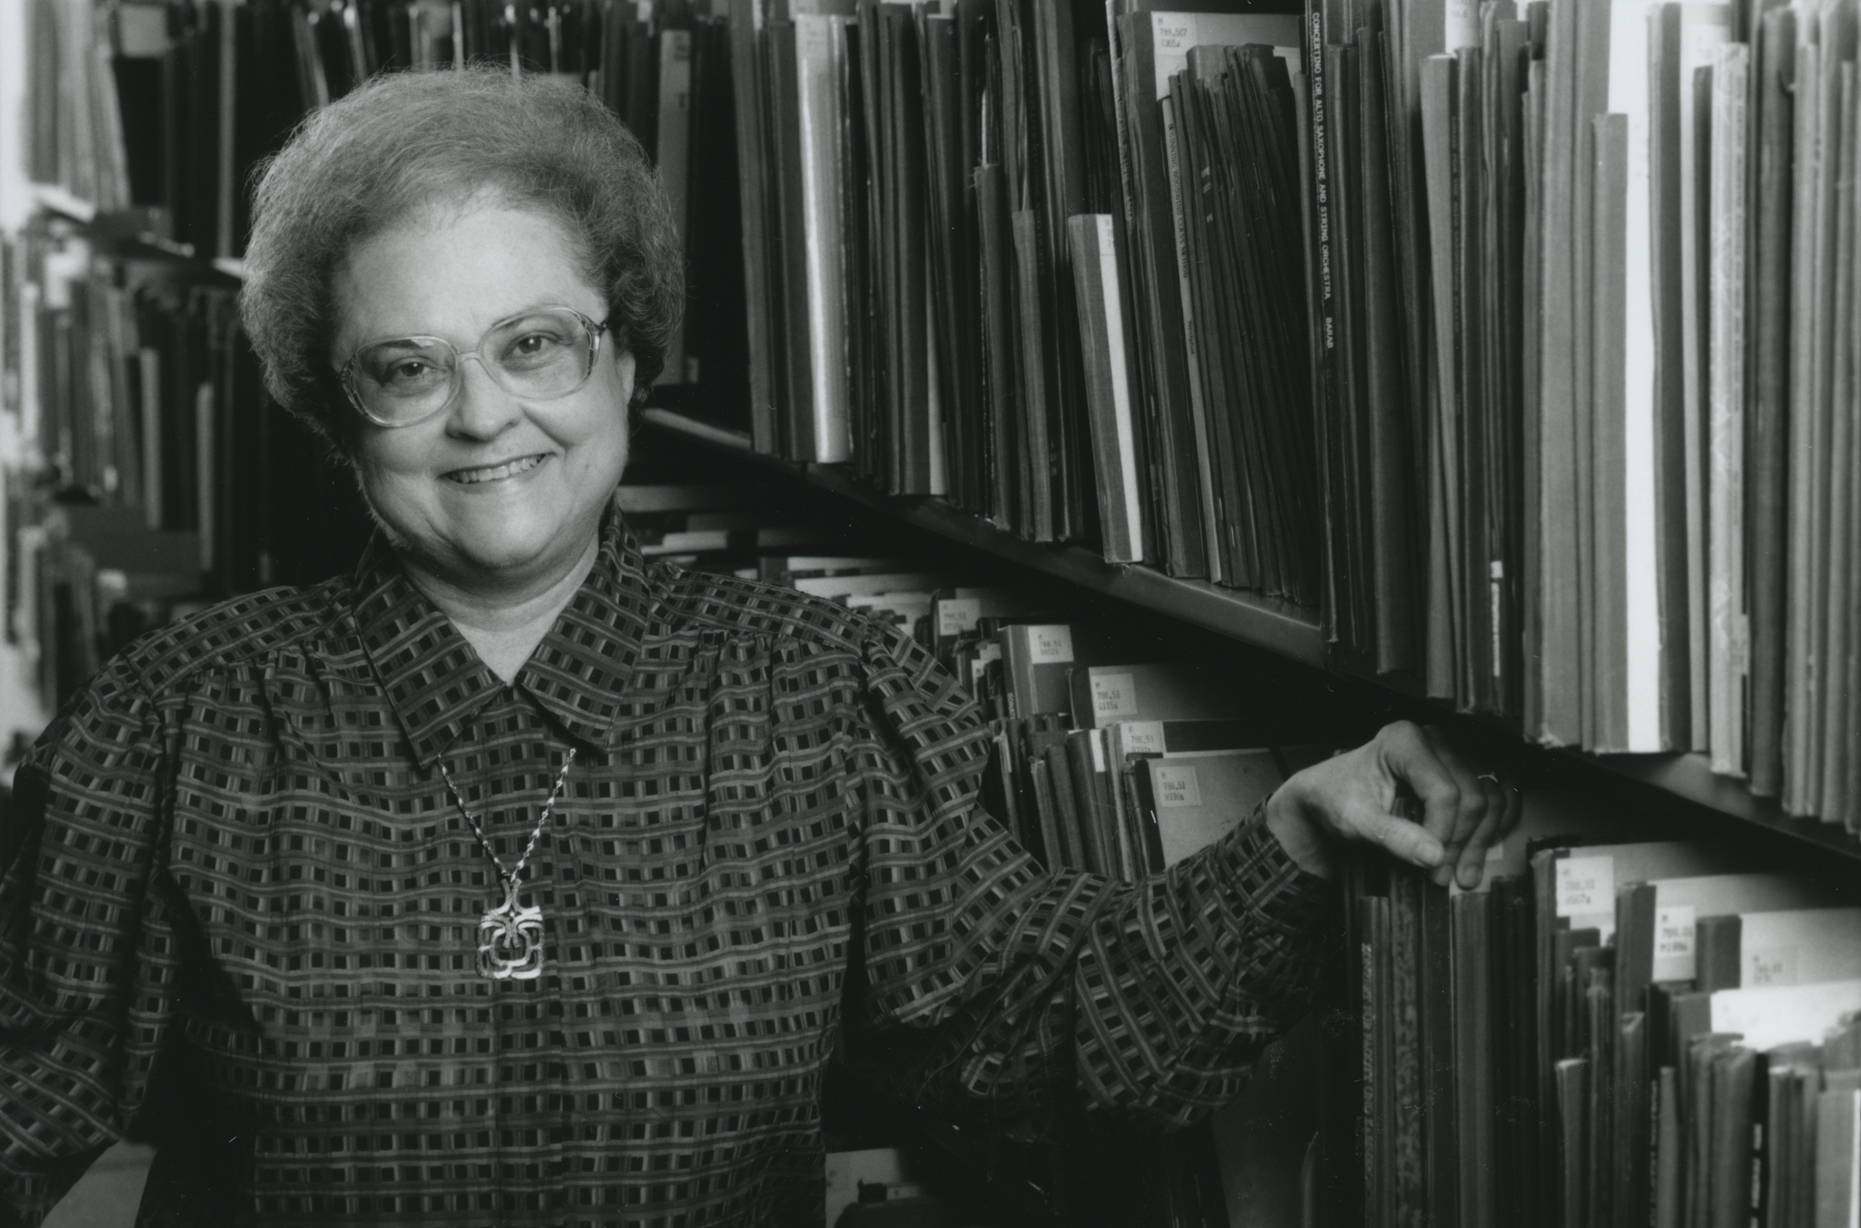 Black and white photograph of Shirley Marie Watts standing in front of shelves filled with music scores.